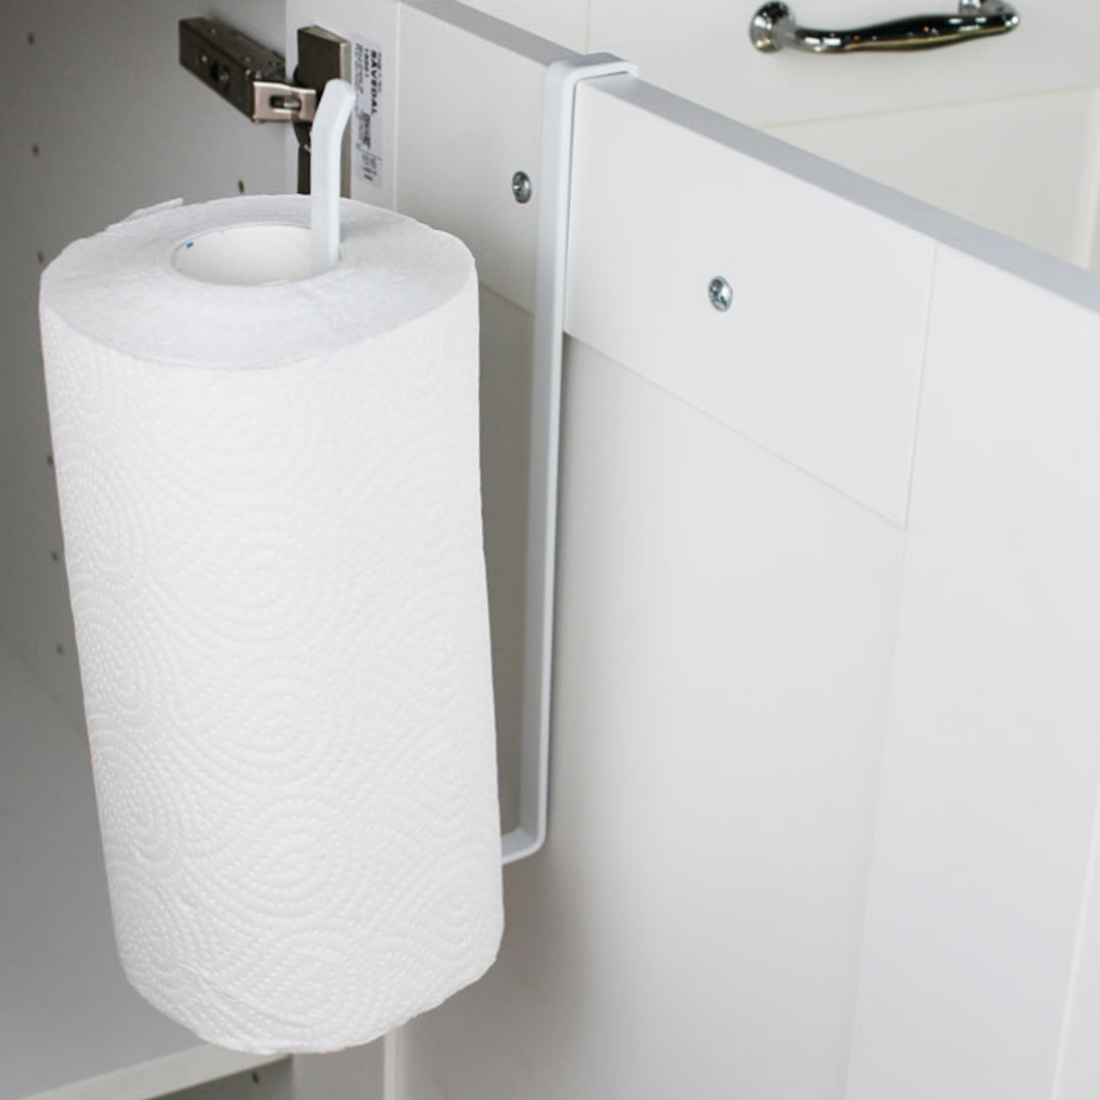 White Kitchen Roll Holder aliexpress : buy hipsteen kitchen toilet paper towel rack